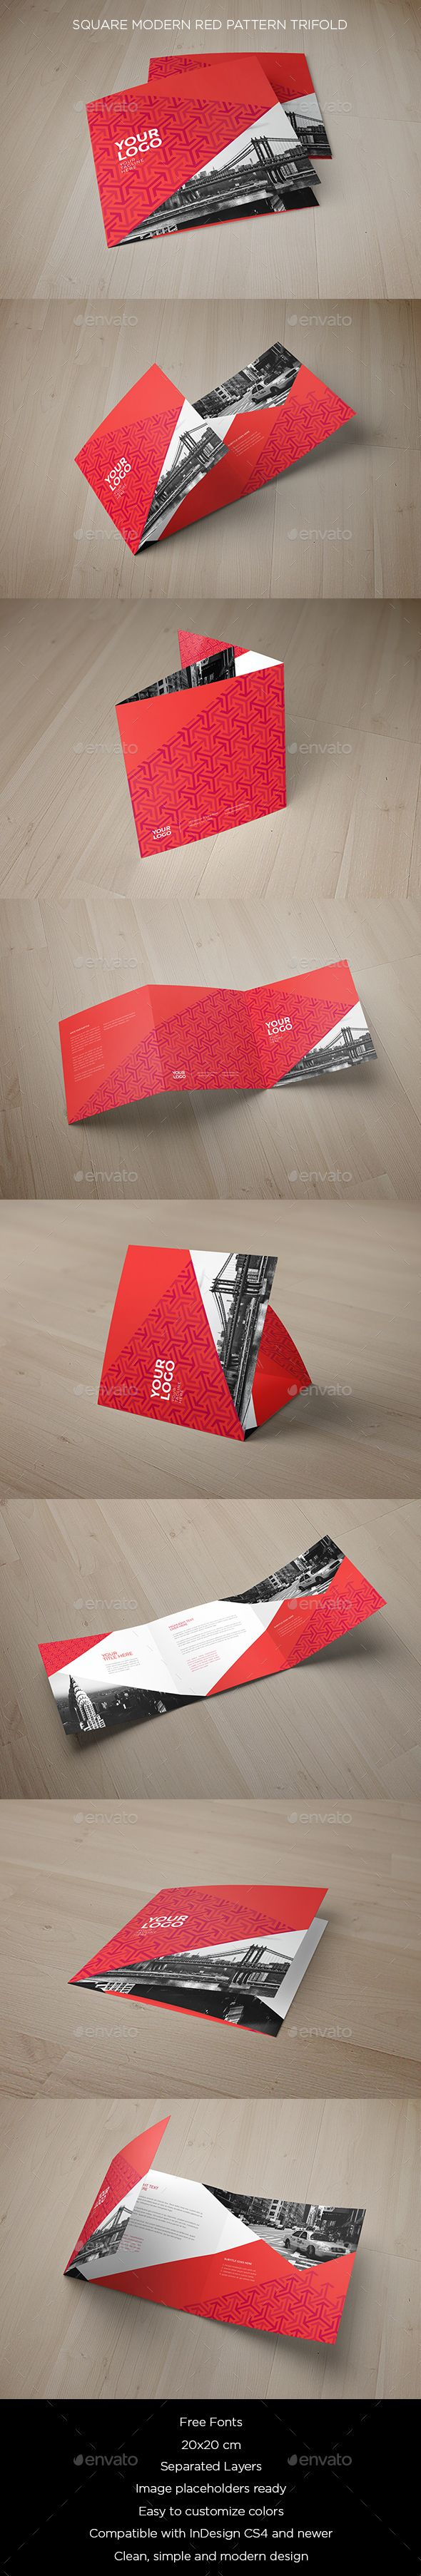 Square Modern Red Pattern Trifold Brochure Template InDesign INDD. Download here: http://graphicriver.net/item/square-modern-red-pattern-trifold/16171362?ref=ksioks